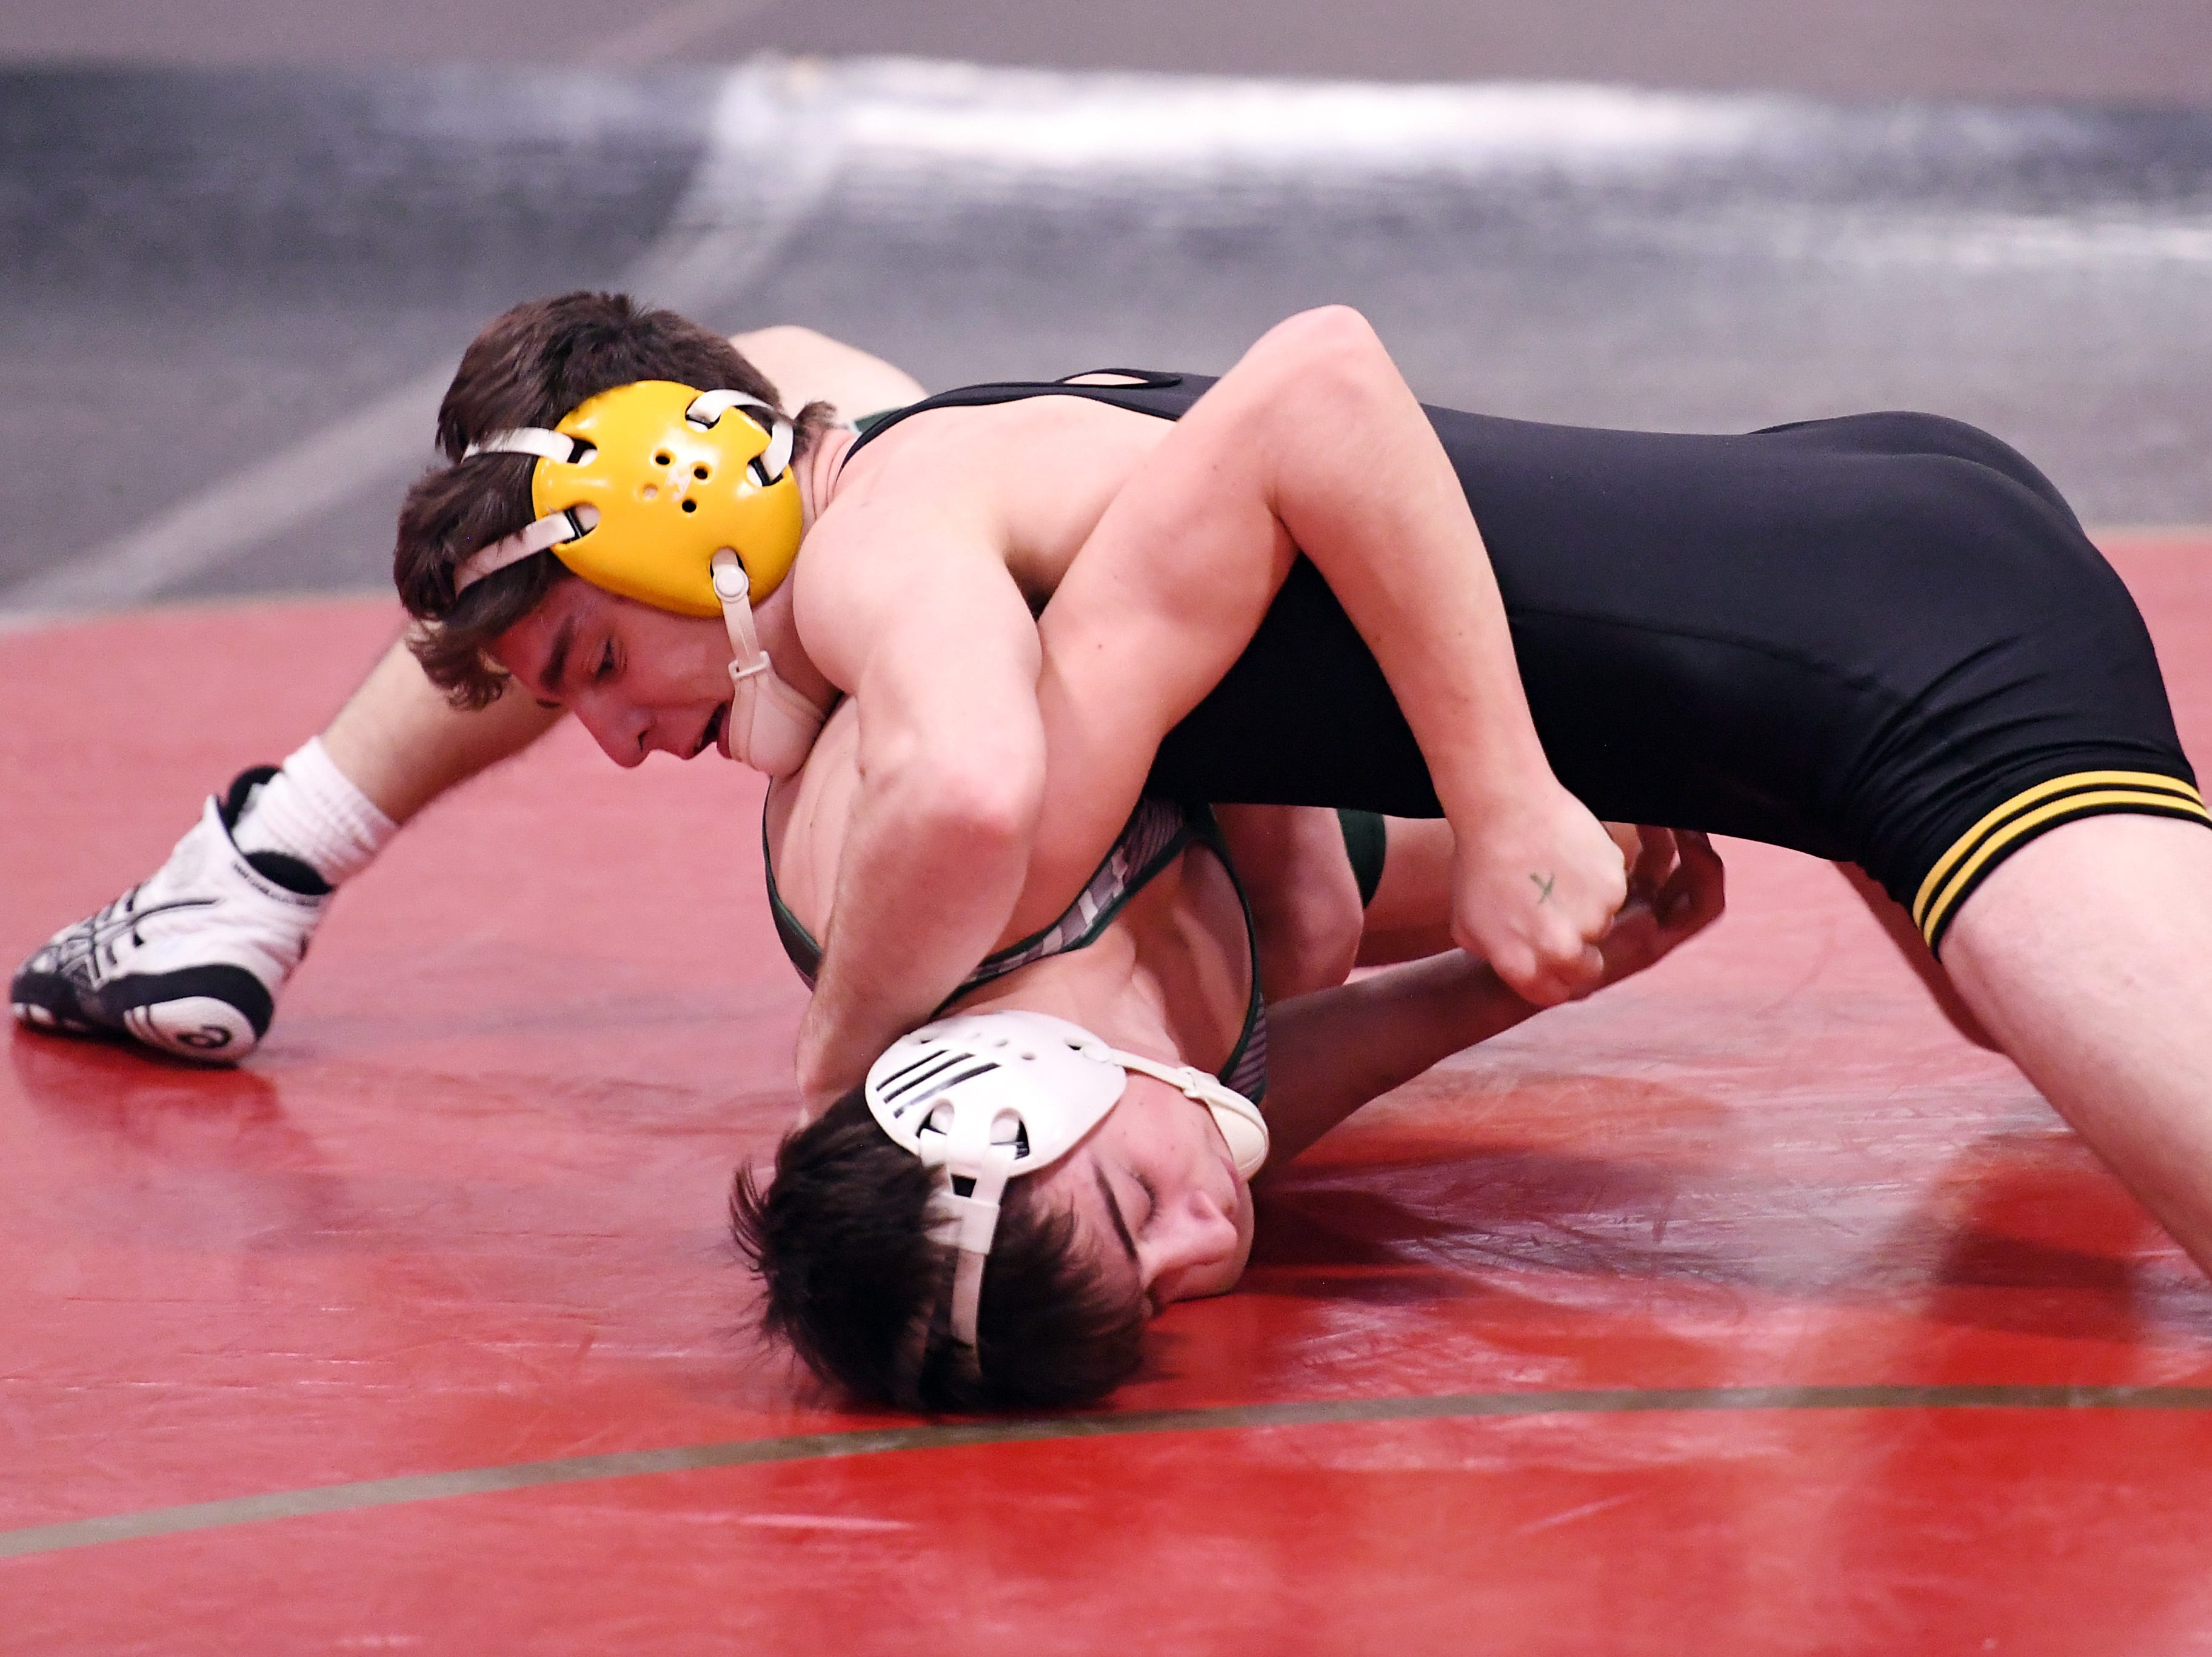 Domenic Difrancescantonio of Hanover Park on his way to defeating Christopher DiRubba of Kinnelon in their 132-pound match at the Morris County Tournament wrestling opening round at Mount Olive High School on Friday, January 25, 2019.